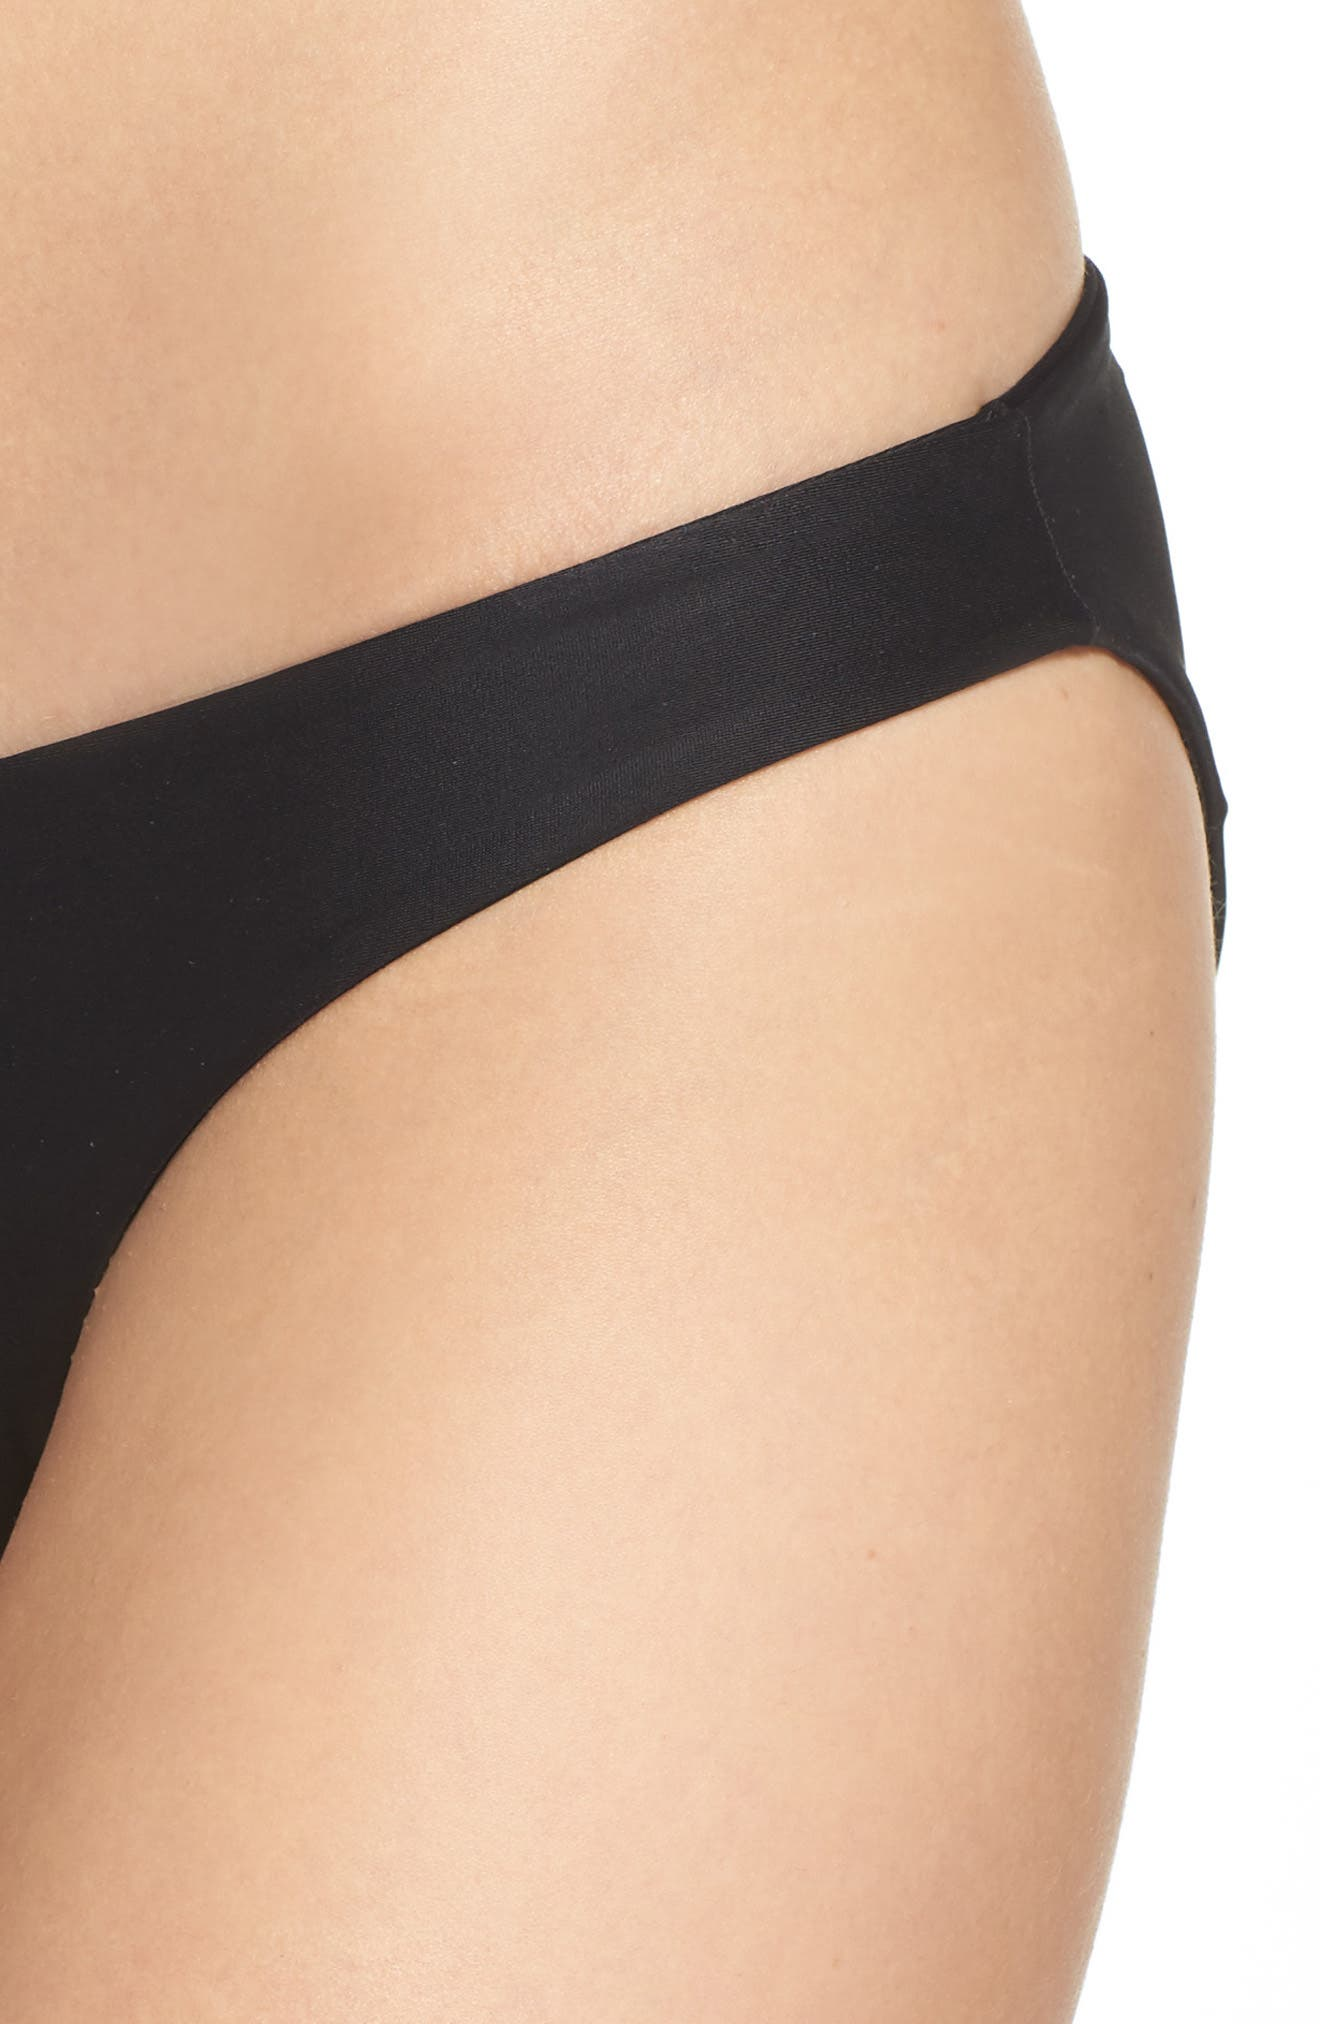 Zuma Bikini Bottoms,                             Alternate thumbnail 4, color,                             001